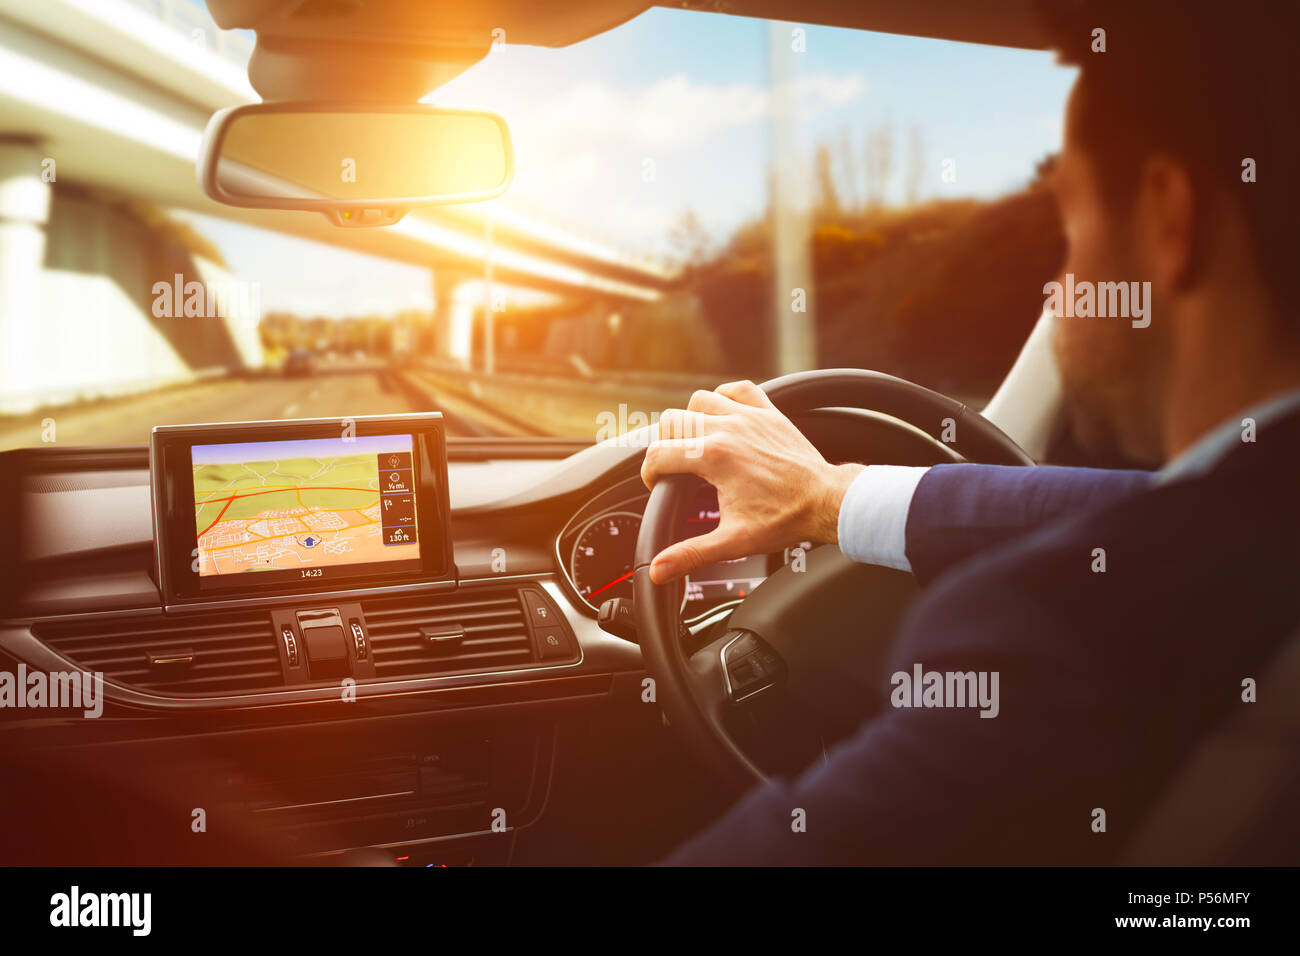 Man diving car with navigation system Stock Photo